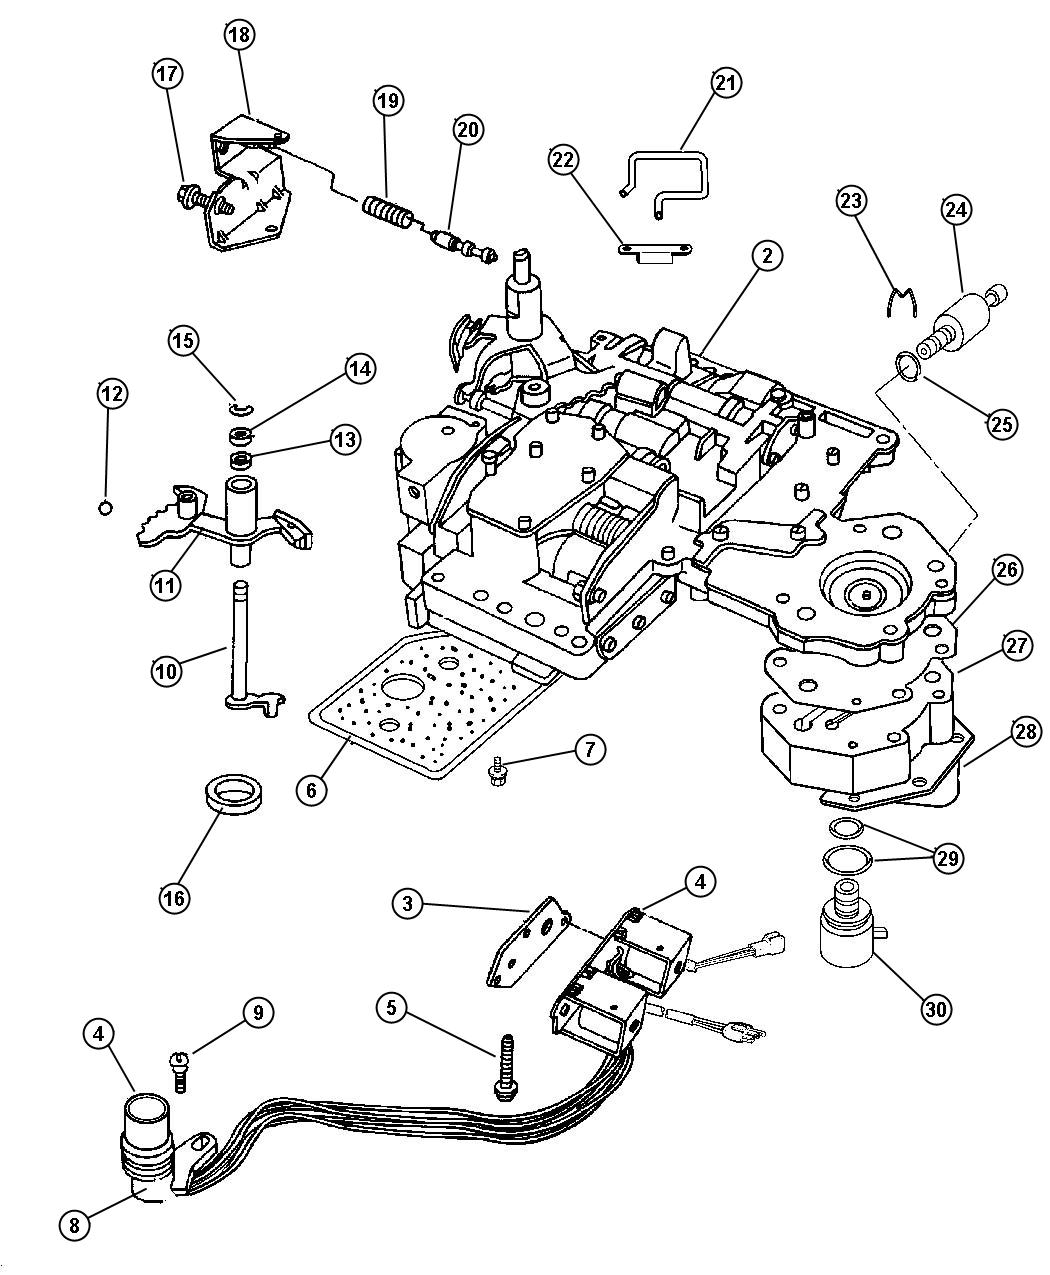 1993 Lincoln Continental Head Gasket: [How To Install 2002 Dodge Durango Valve Body]